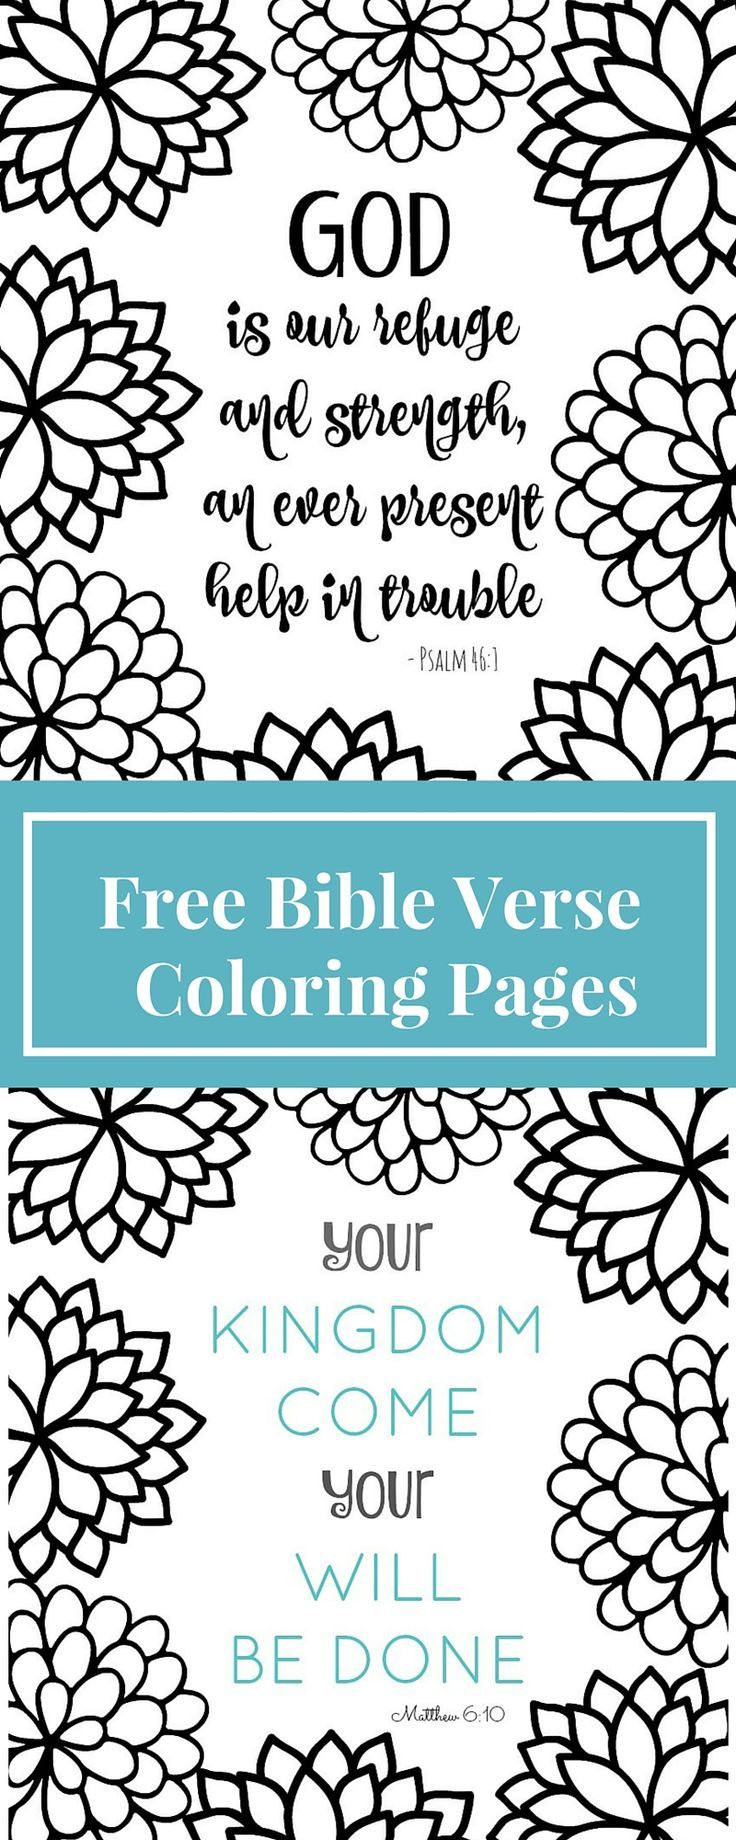 coloring pages with bible verses Download-Free Printable Bible Verse Coloring Pages with Bursting Blossoms Free Printable Coloring Pages Pinterest 4-k